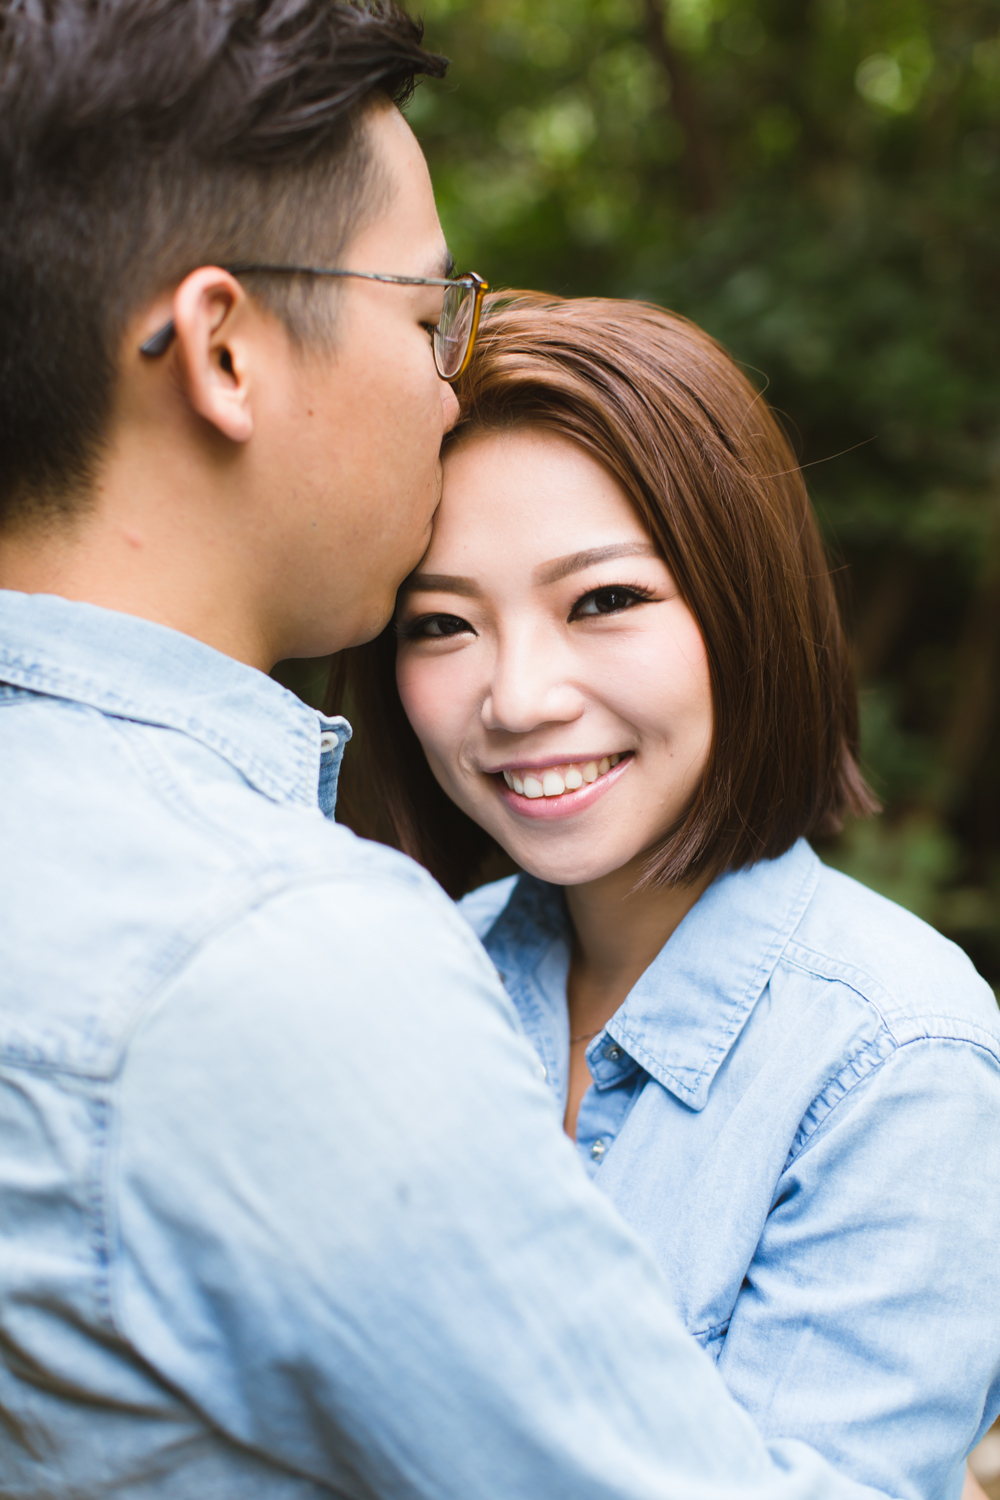 Sweet couple portrait • Hong Kong photographer